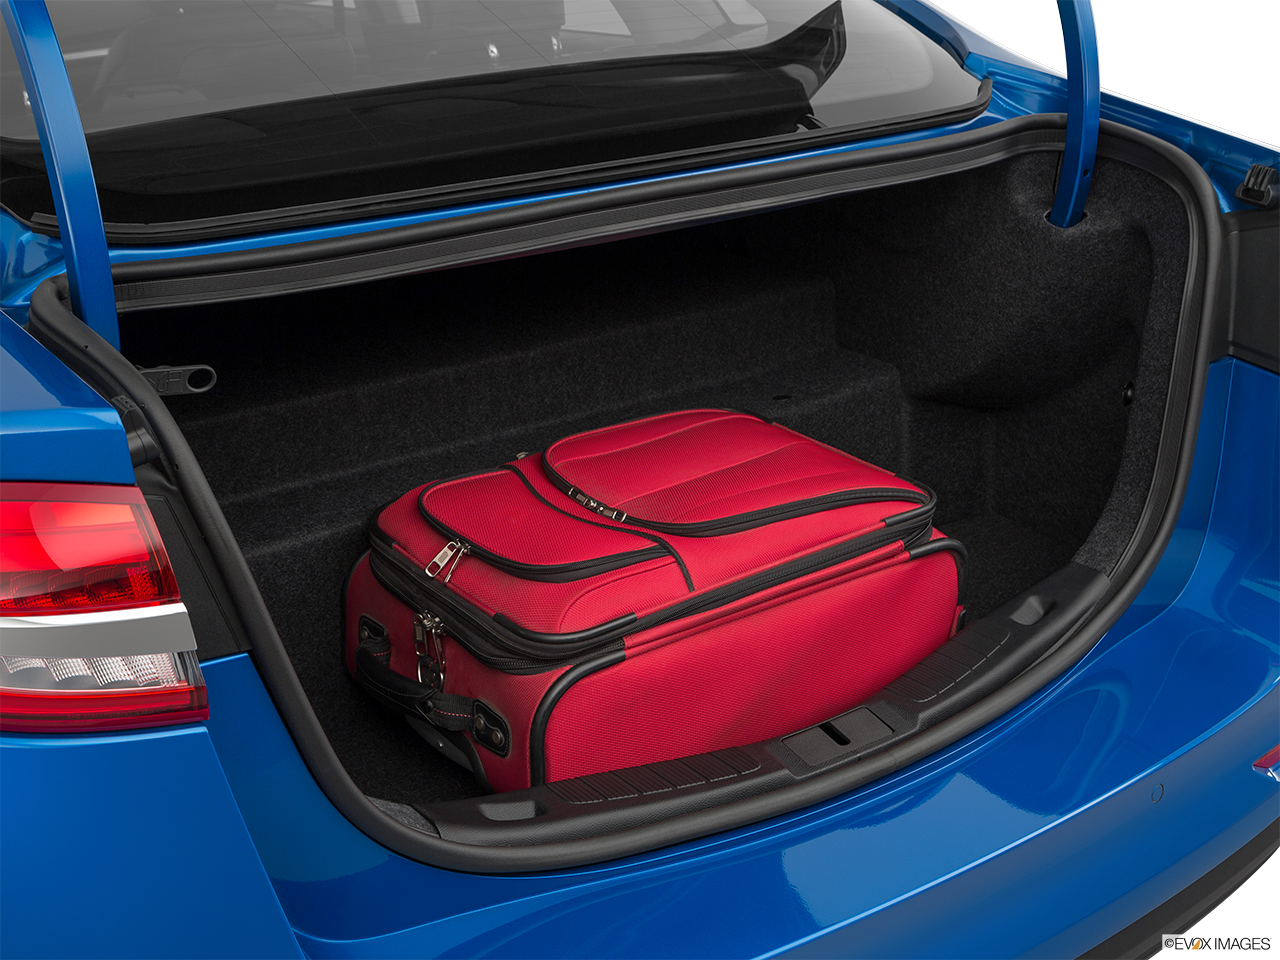 Trunk view of the Ford Fusion Energi